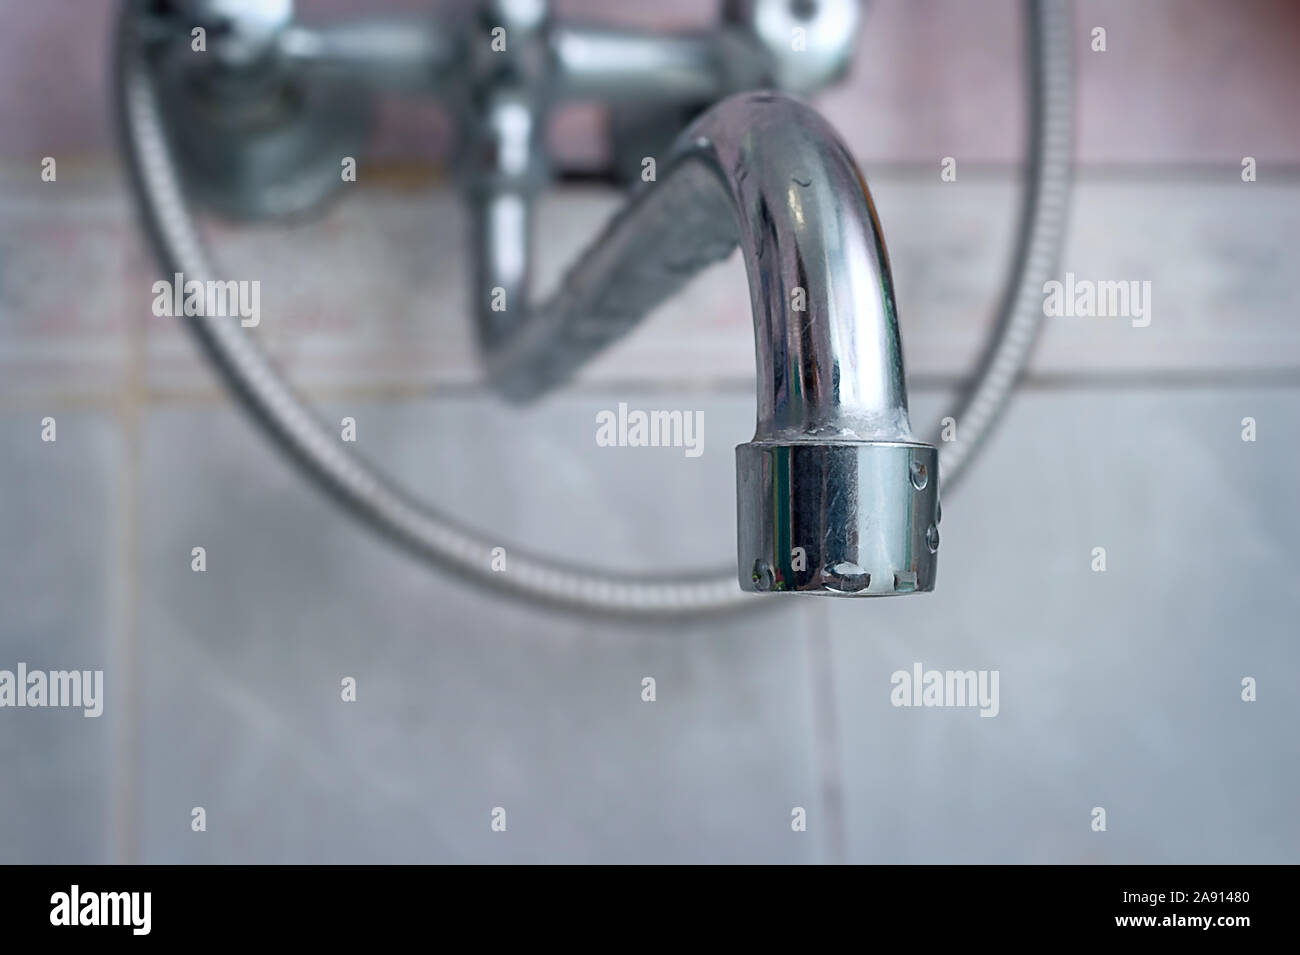 Dripping Old Silver Faucet Tap Bath Or Kitchen Faucet Gasket Needs Repair Stock Photo Alamy